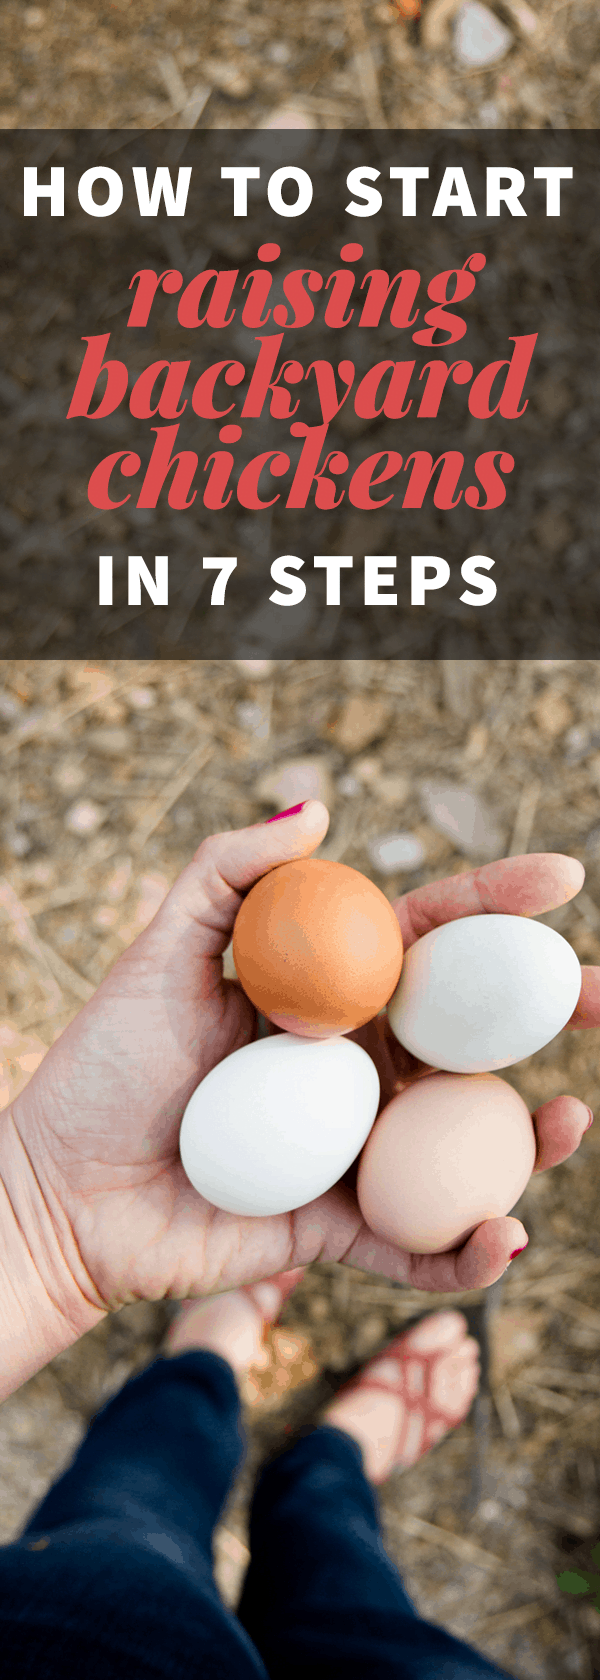 How to Start Raising Backyard Chickens in 7 Steps